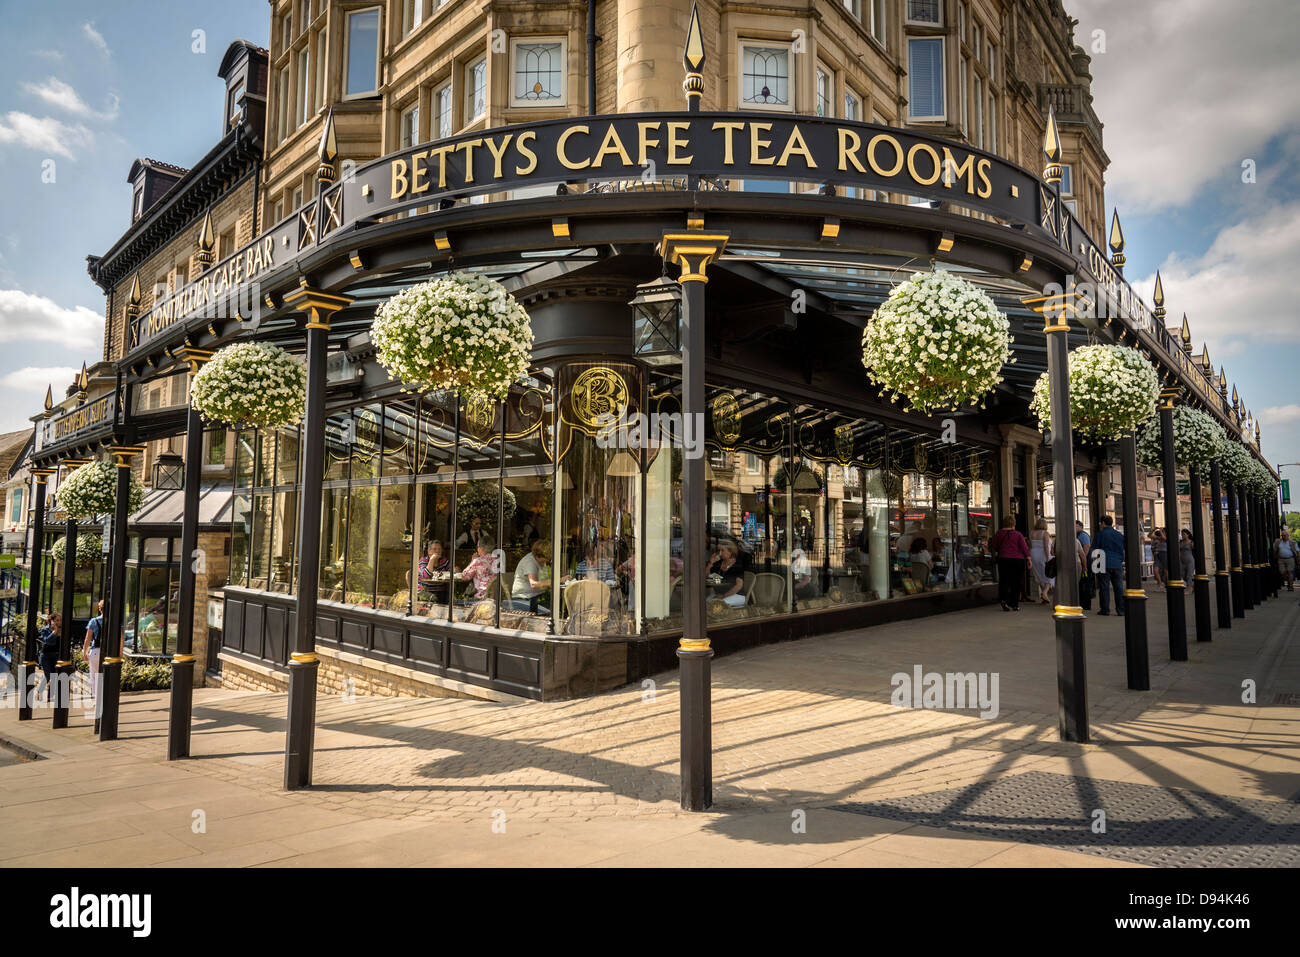 Harrogate in North Yorkshire formerly the West Riding of Yorkshire. The famous Betty's Tea Room café. The - Stock Image